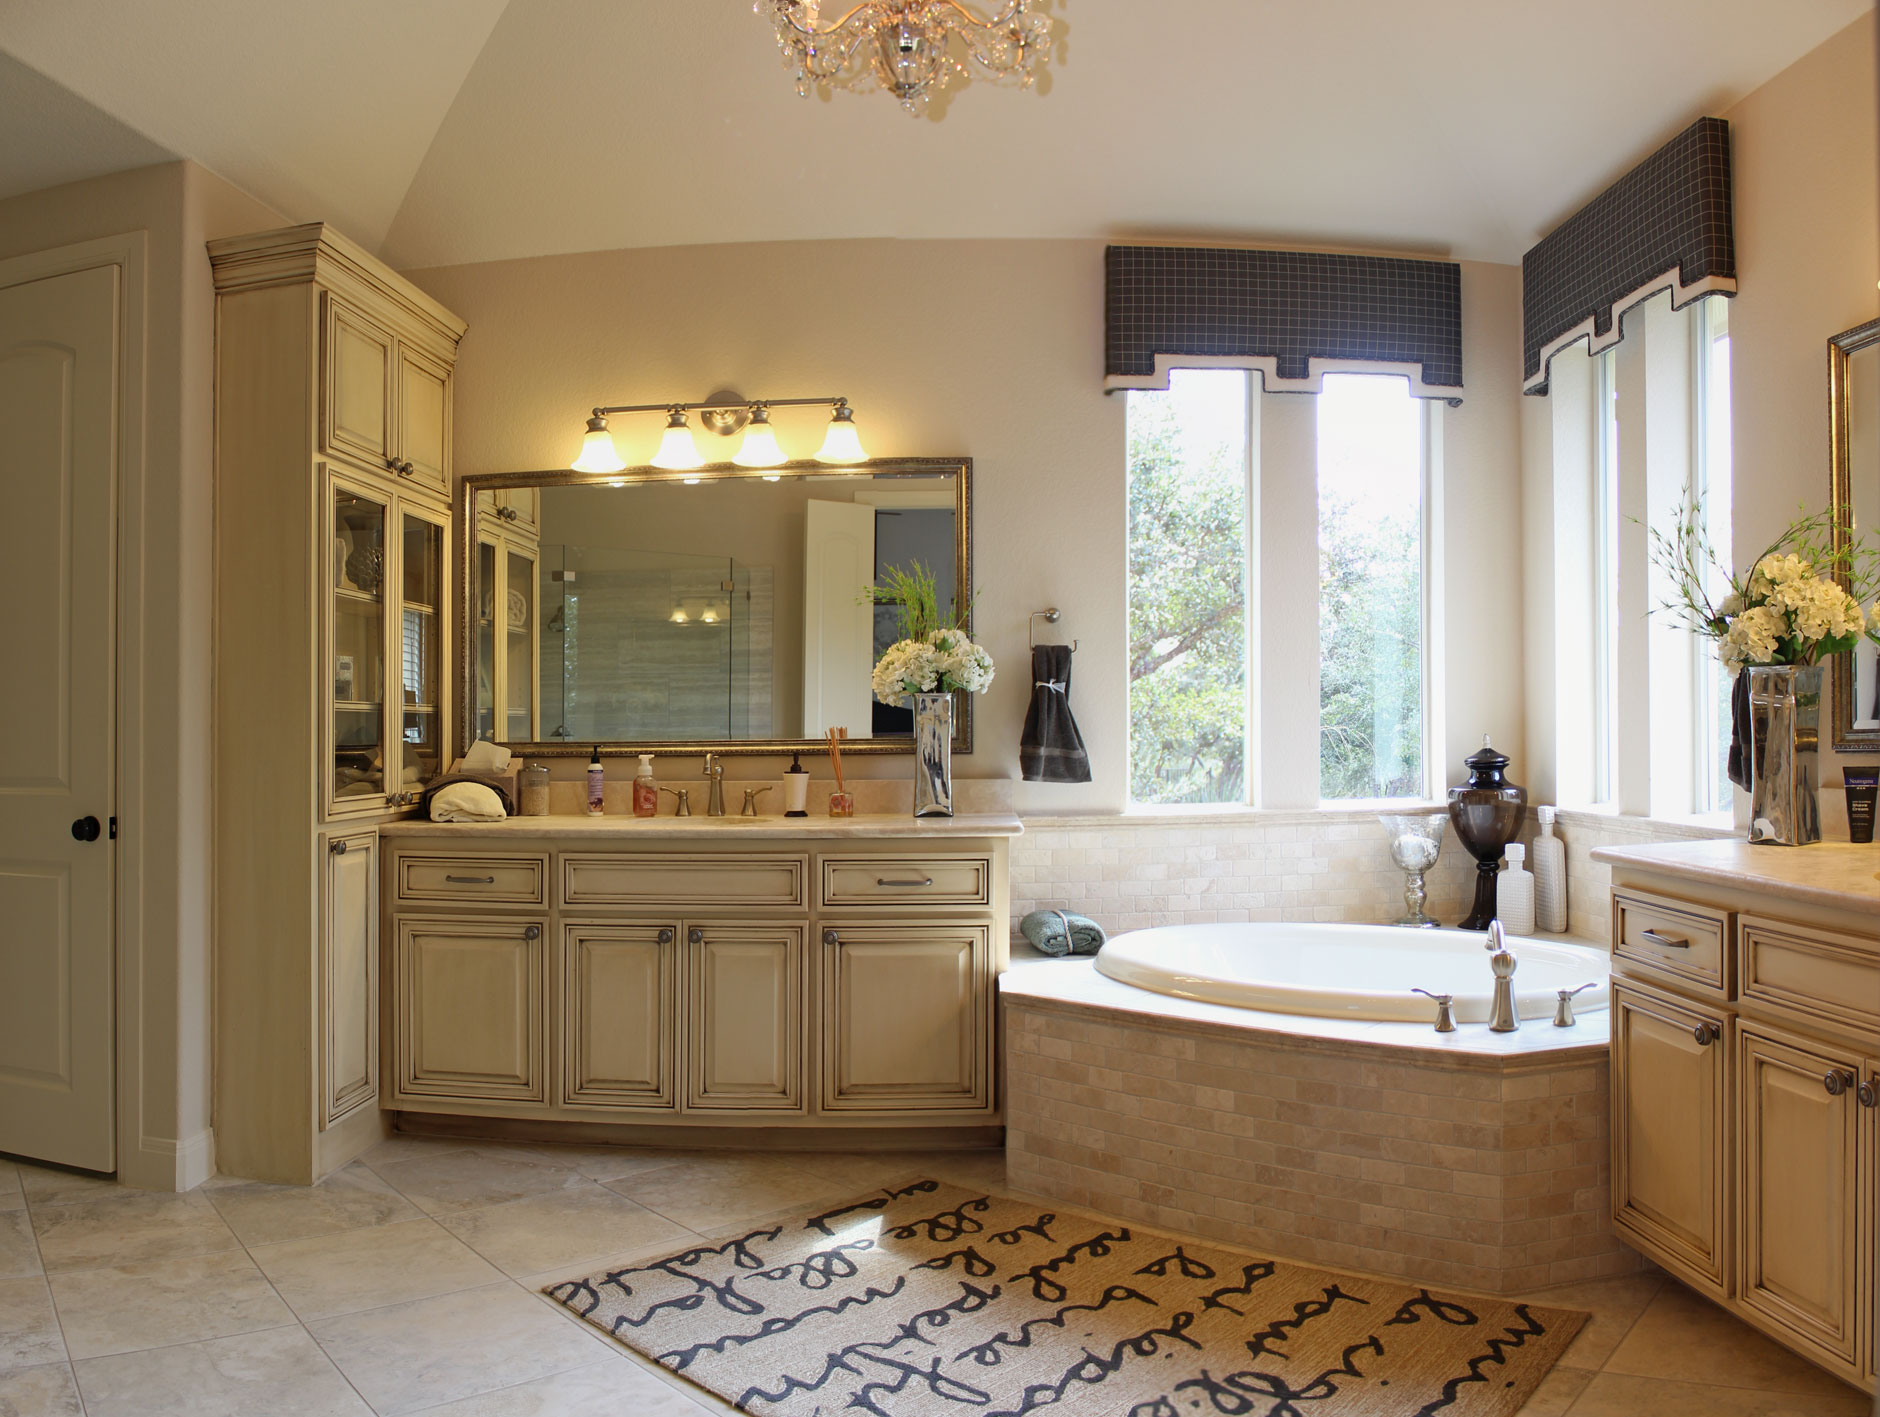 master bath cabinets in bone white with tall glass door cabinet